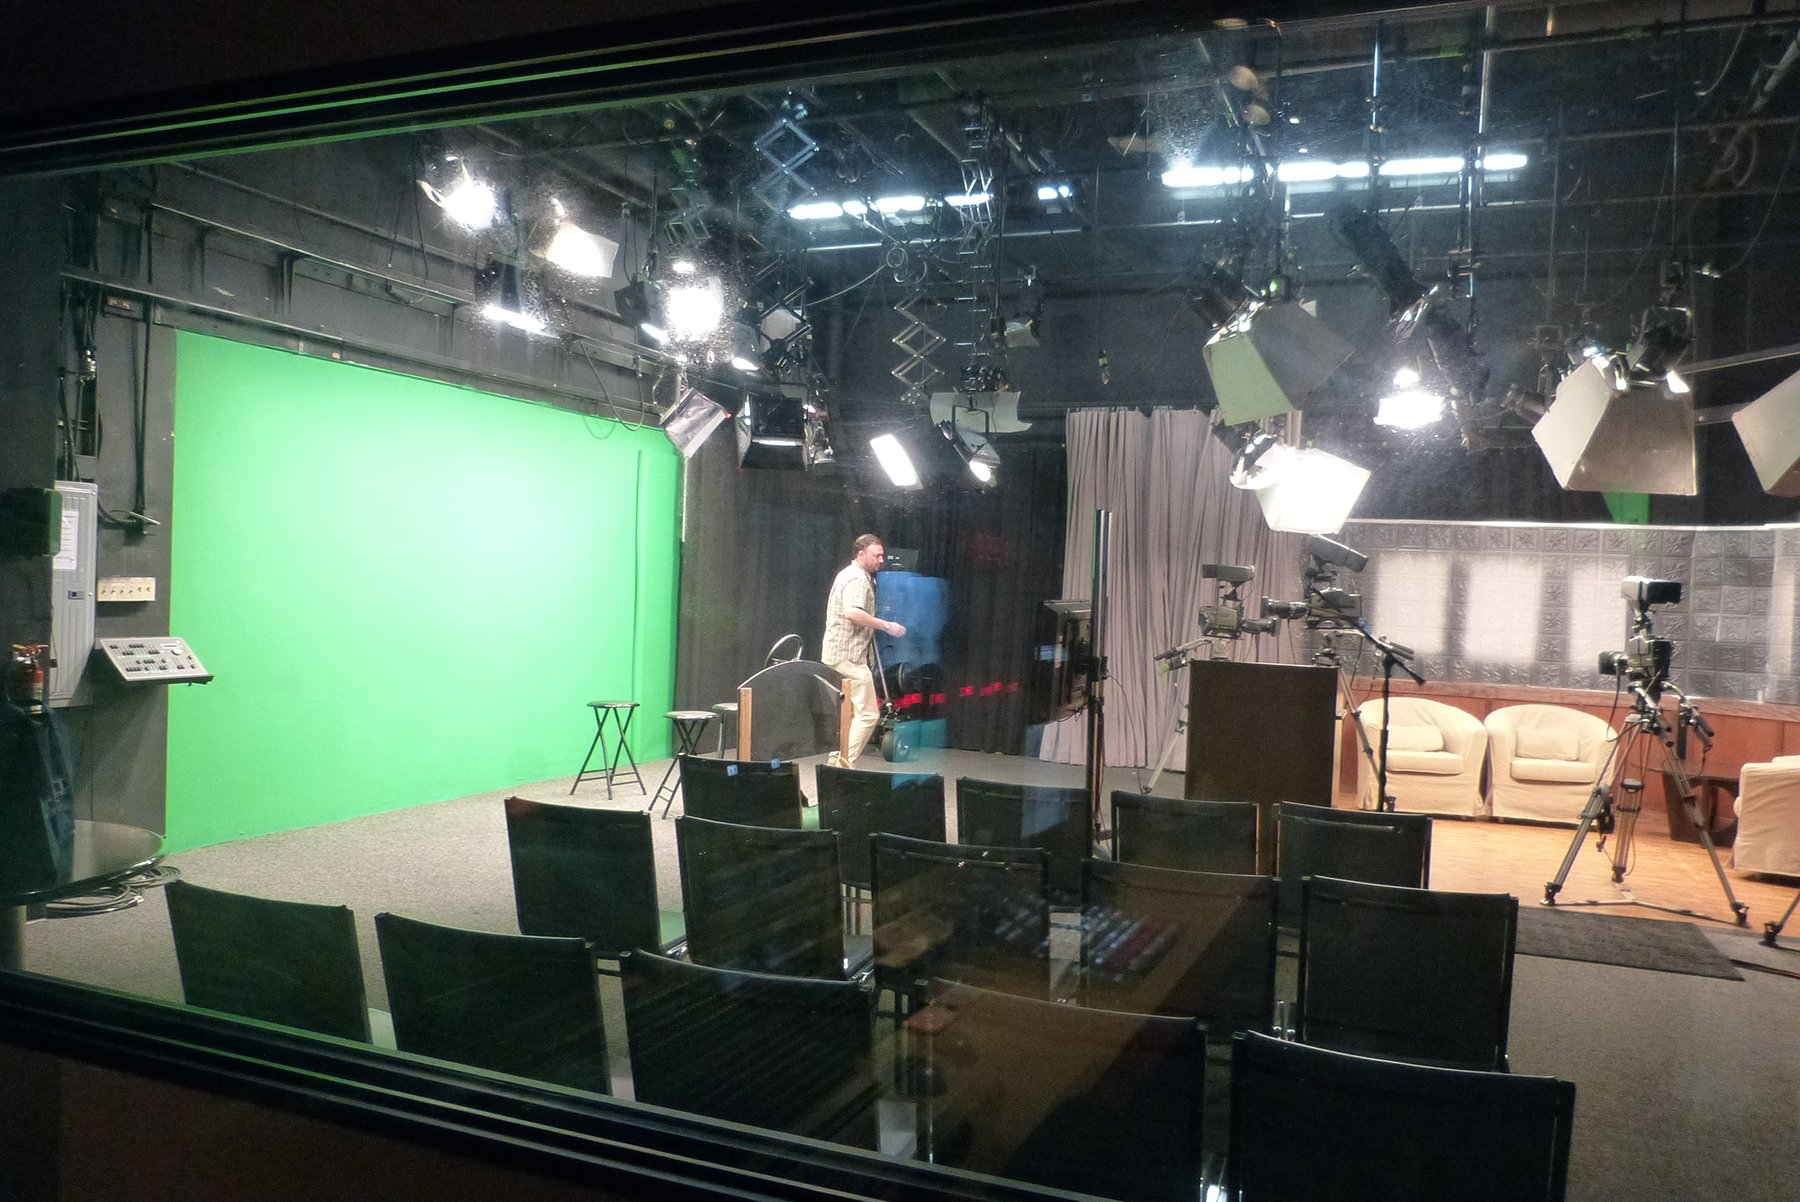 Oceanside's public access station KOCT is opening up its doors to the public June 15, giving viewers a chance to get a behind-the-scenes look at a production and to tour the studio. Photo courtesy KOCT